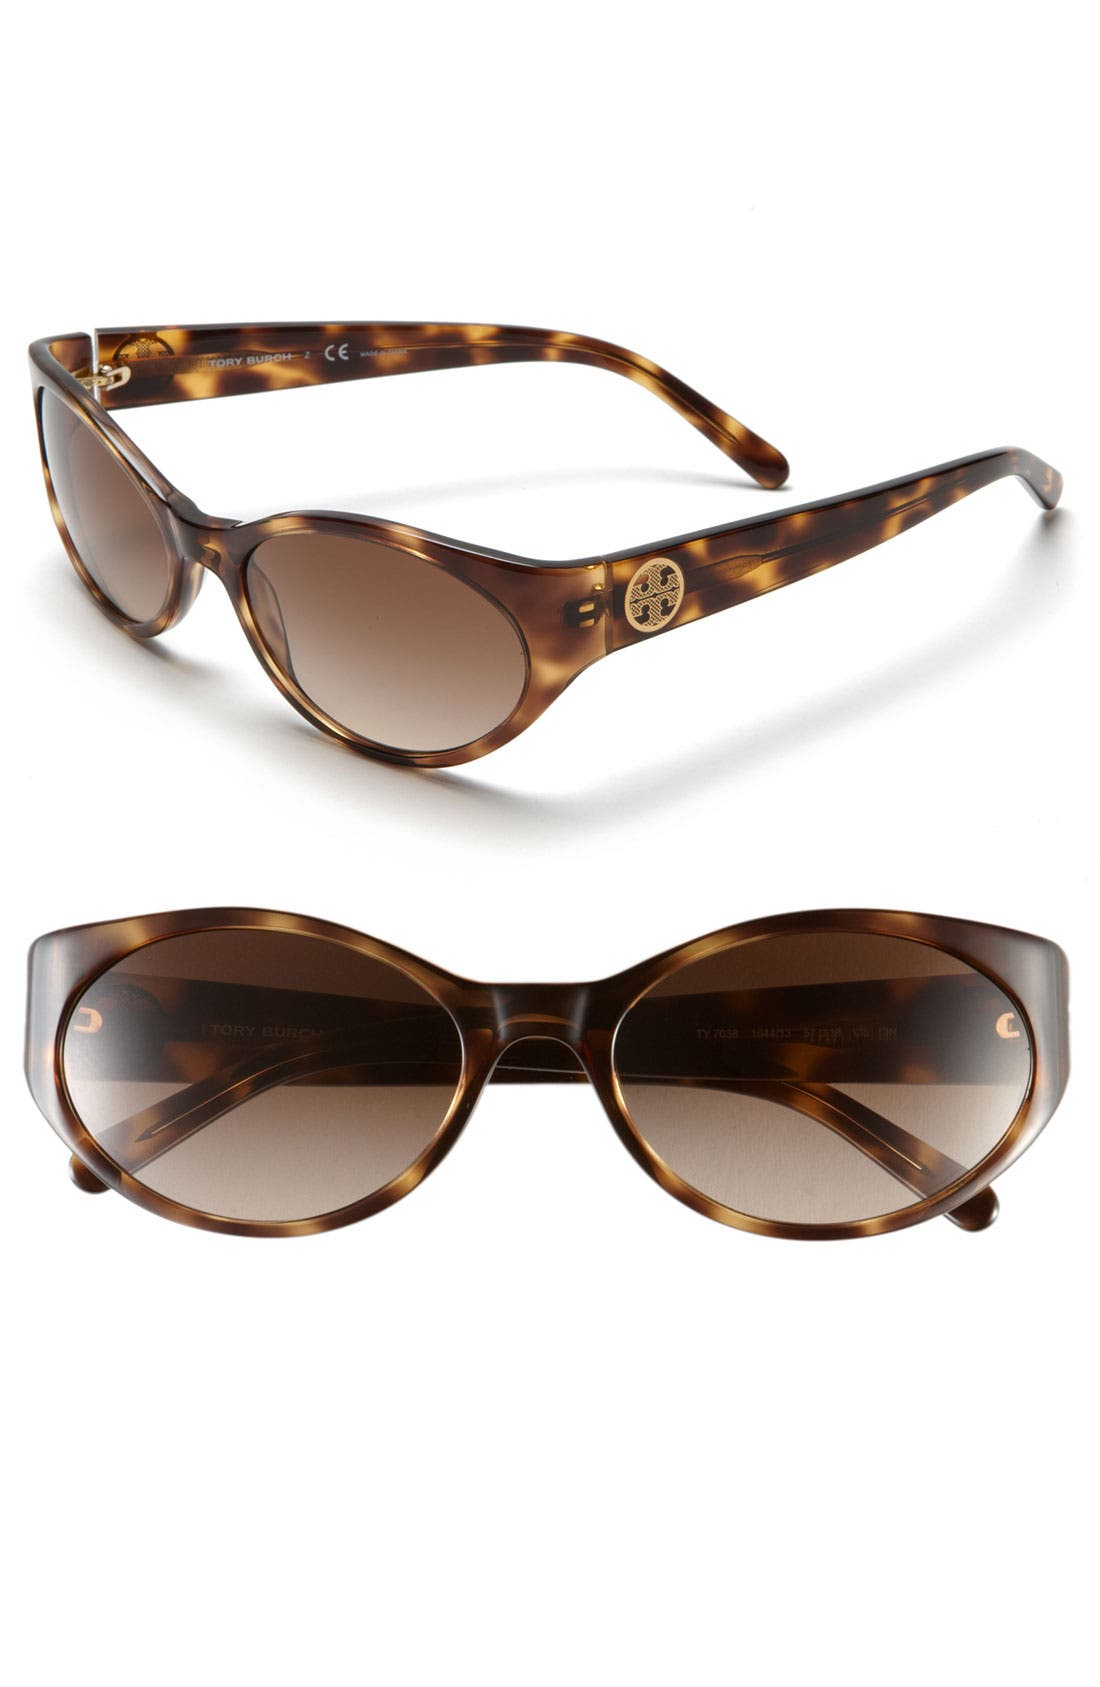 Main Image - Tory Burch 57mm Cat Eye Sunglasses